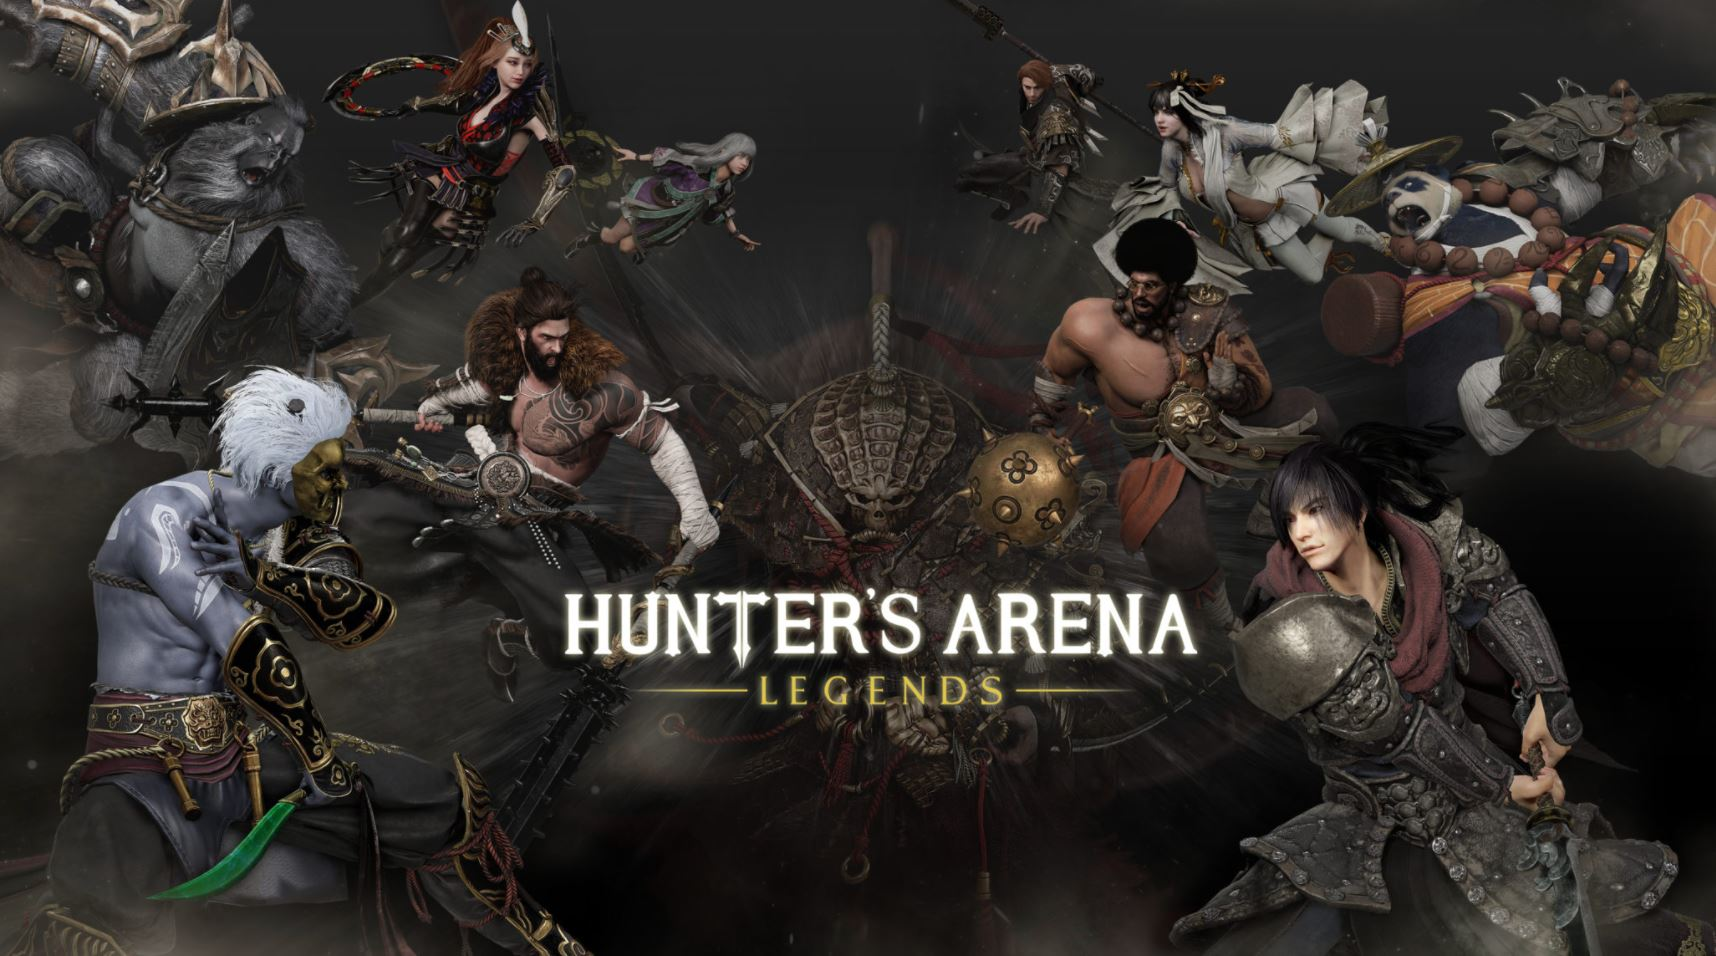 hunters-arena-legends-ps5-PS4-news-reviews-videos